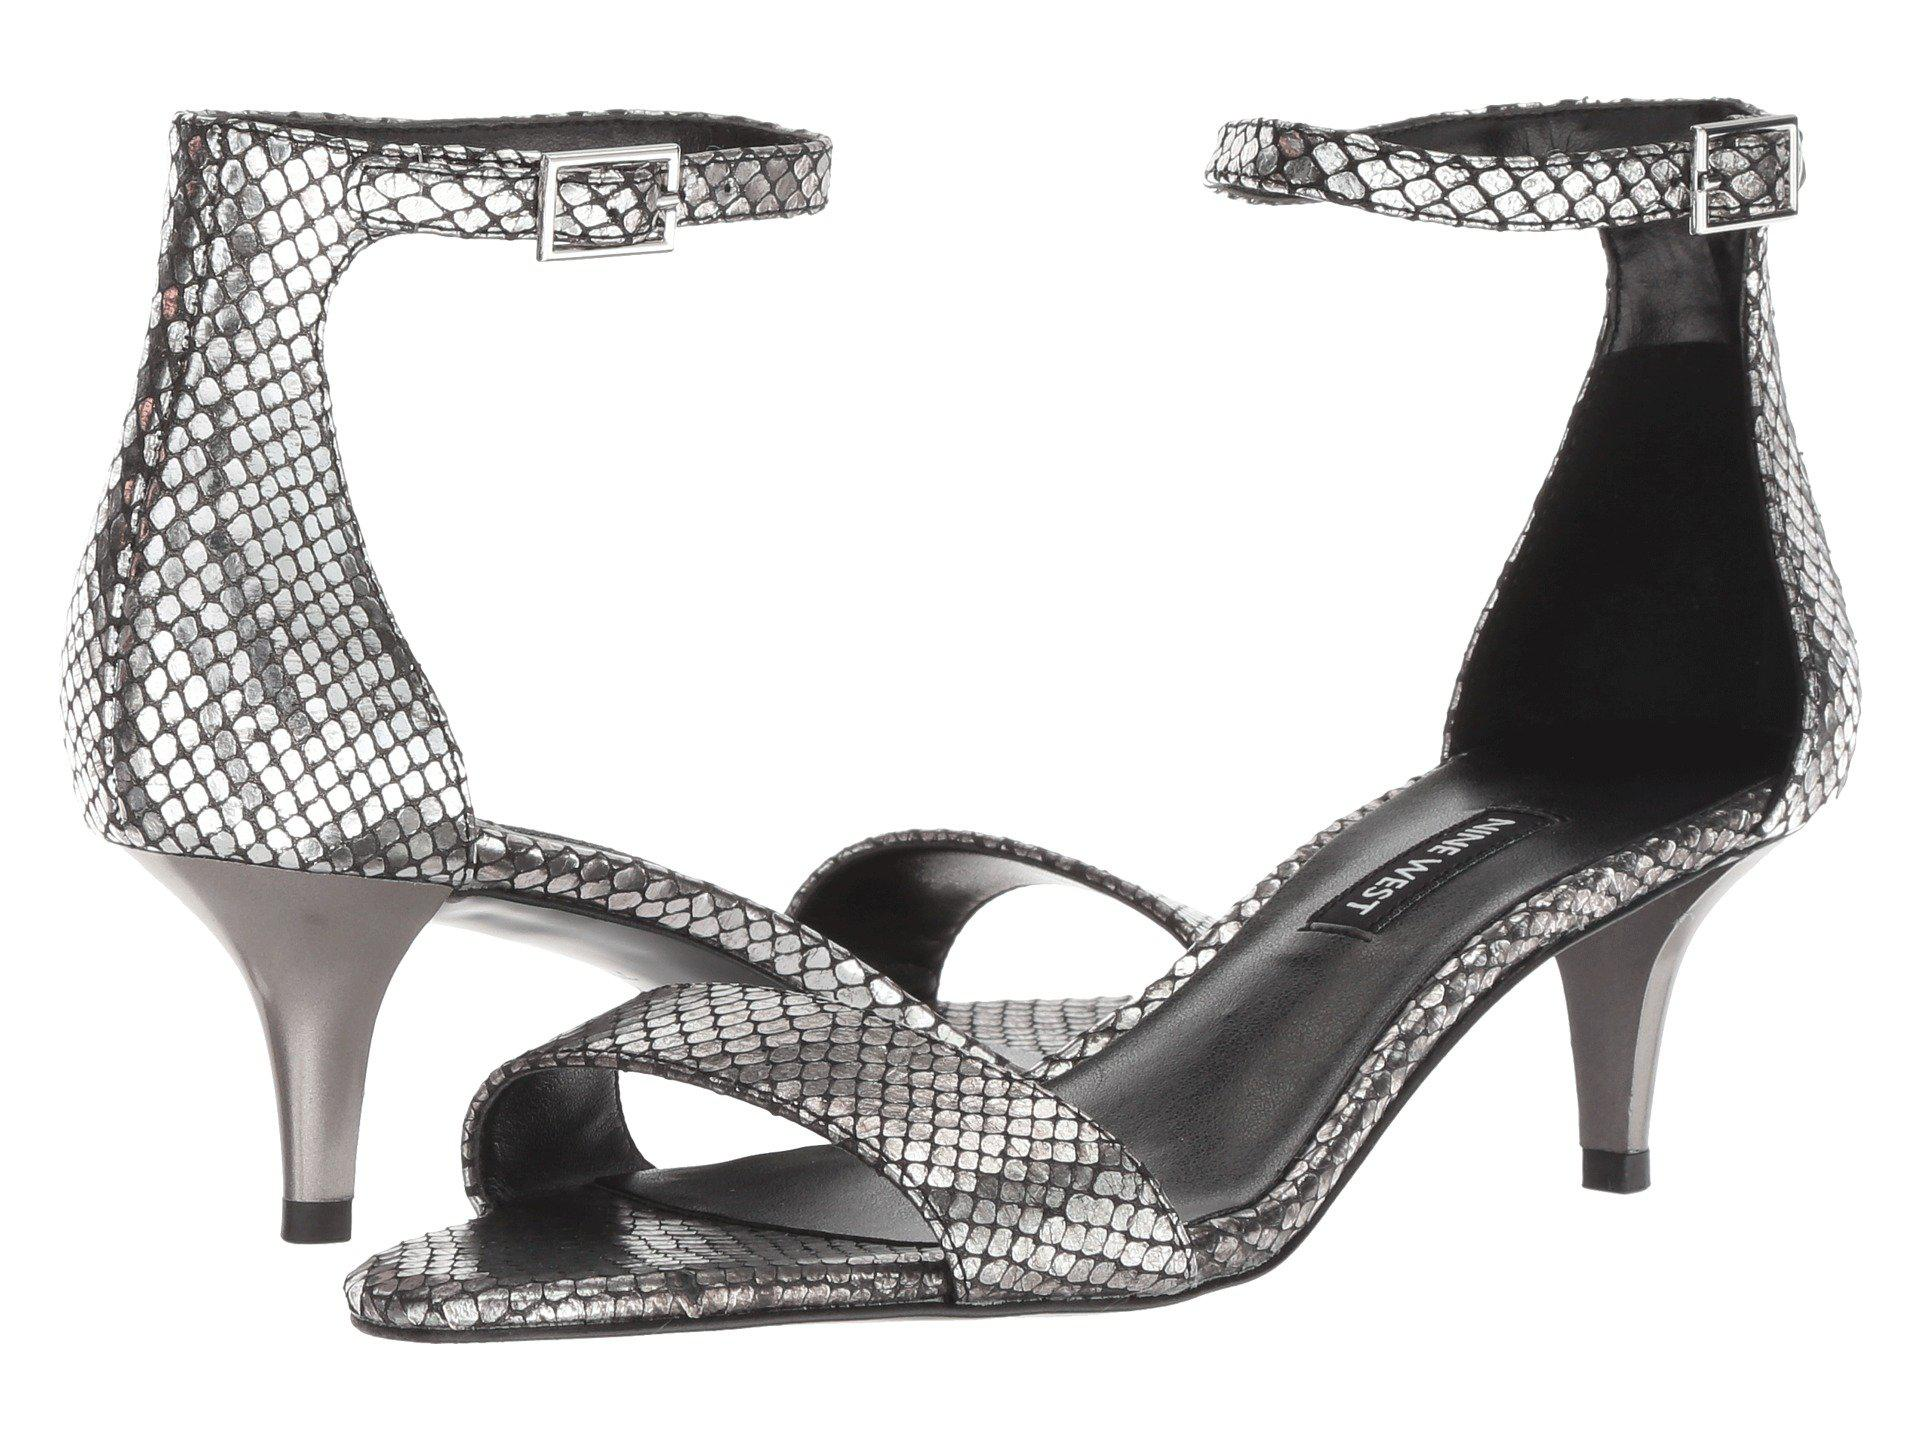 42652e1e3ee Lyst - Nine West Leisa Heel Sandal in Metallic - Save 44%